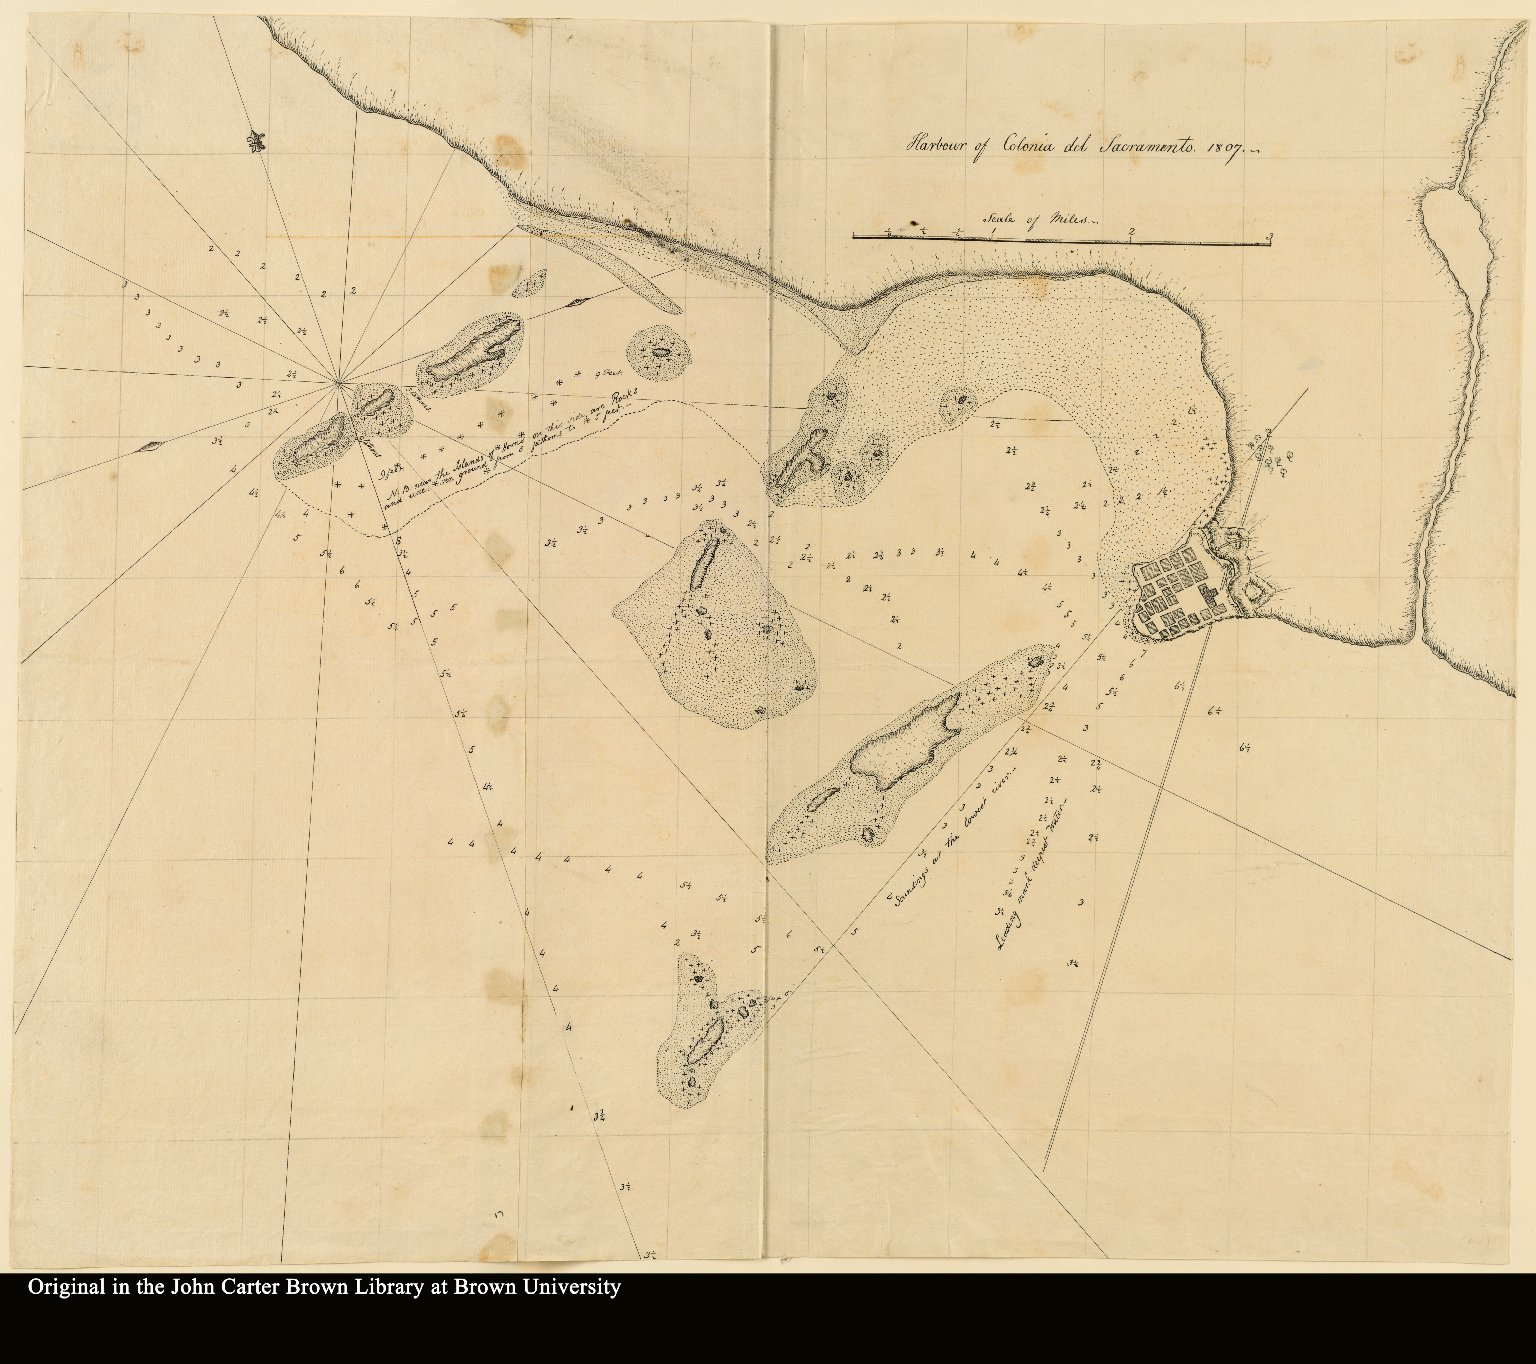 Map 16] Harbour of Colonia del Sacramento 1807 - JCB Map Collection